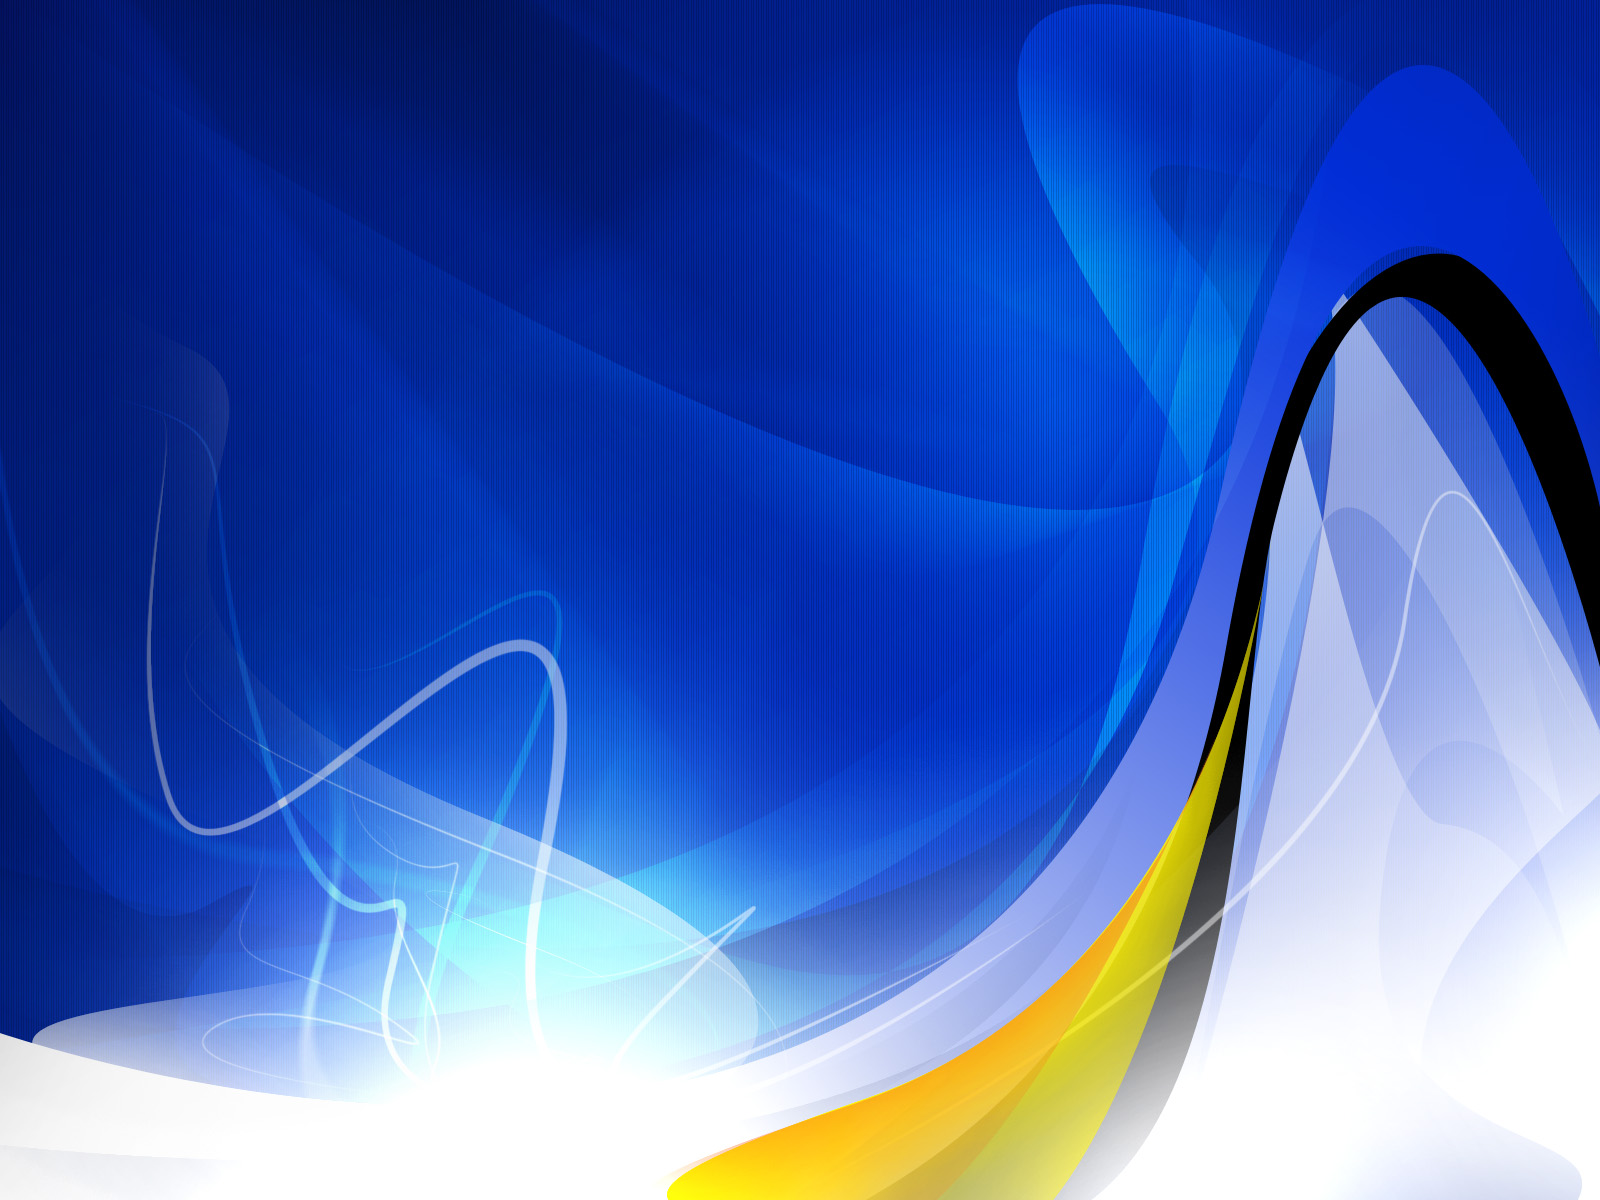 1600x1200 spark colors desktop pc and mac wallpaper - Desktop wallpaper 1600x1200 ...